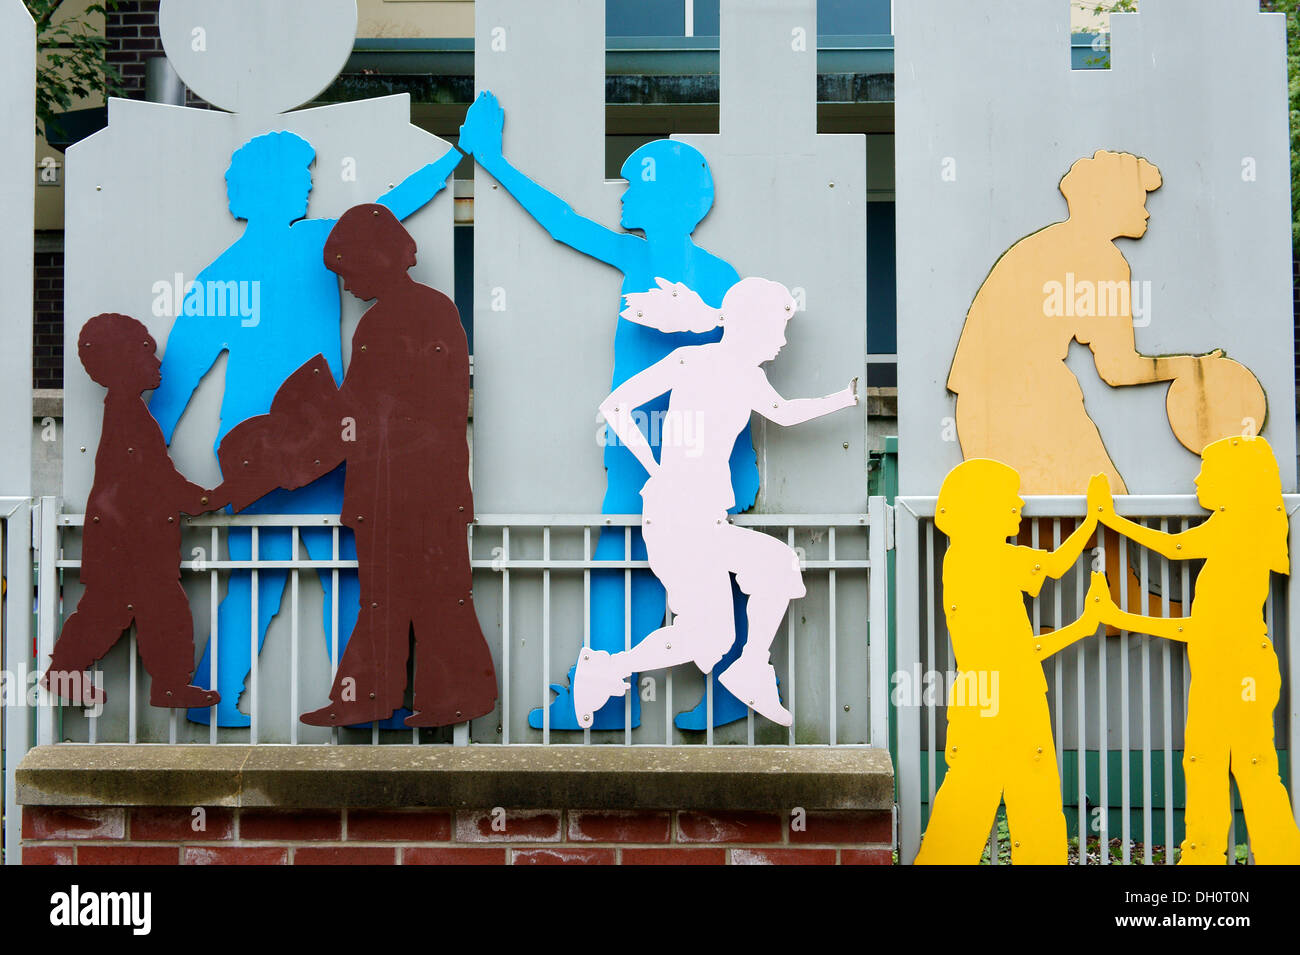 Metal sculpture showing children playing outside Elsie Roy Elementary School, Yaletown, Vancouver, British Columbia, Canada - Stock Image